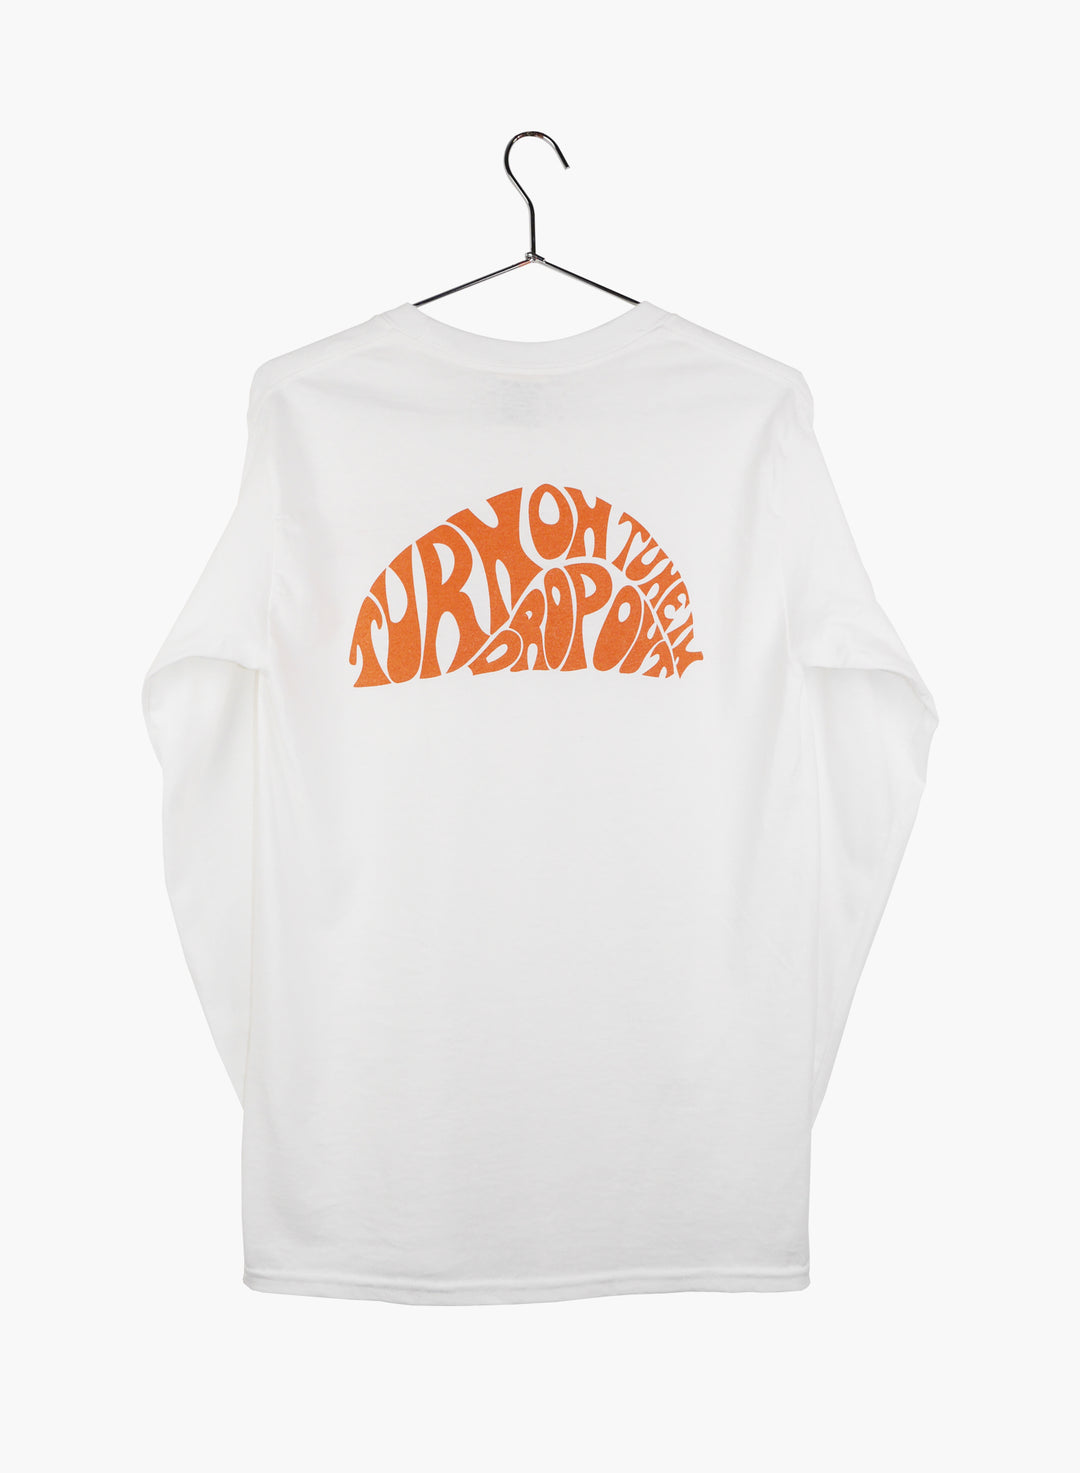 T shirt long sleeves with pocket, white, with Turn On design hand screen printed, inspired by Timothy Leary.